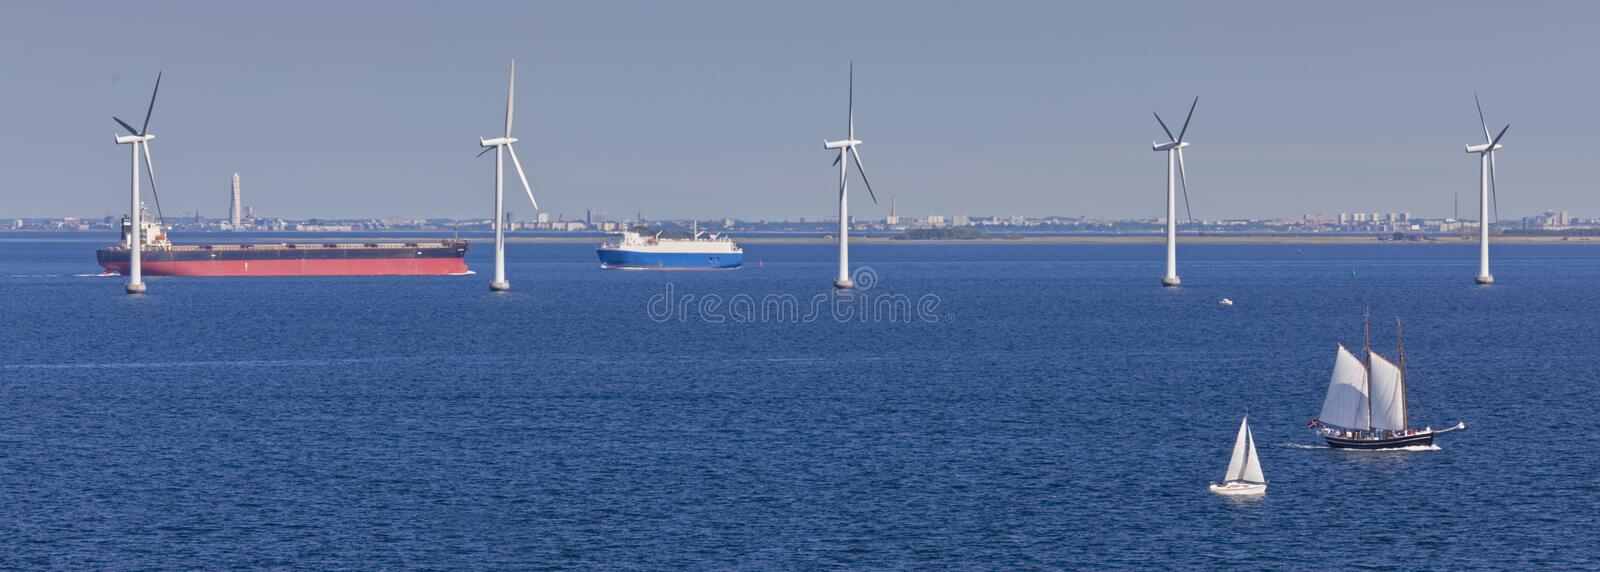 Sailing ships, windmills and tankers stock photography